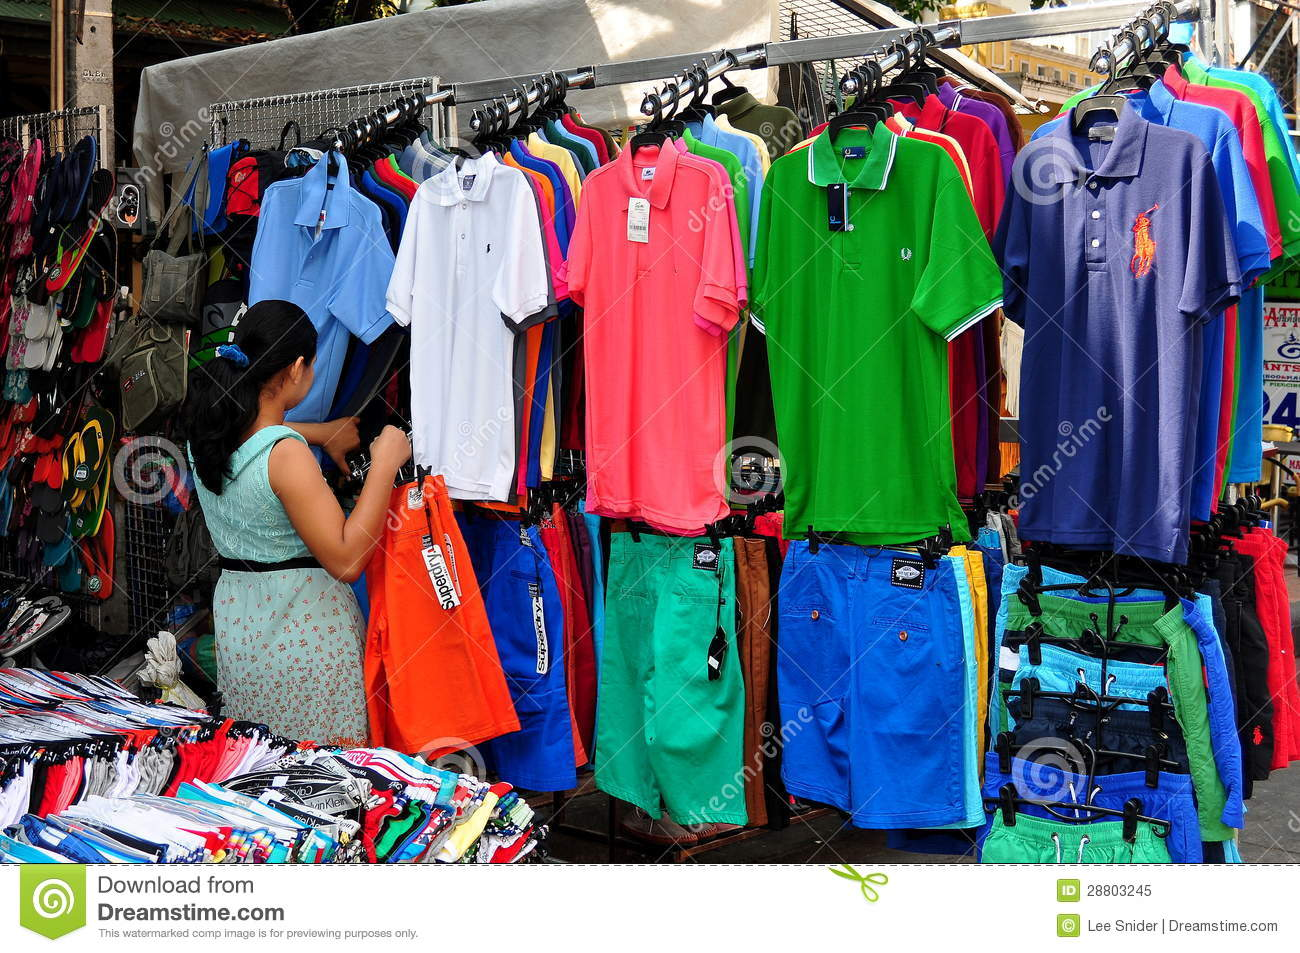 Clothing stores in bangkok